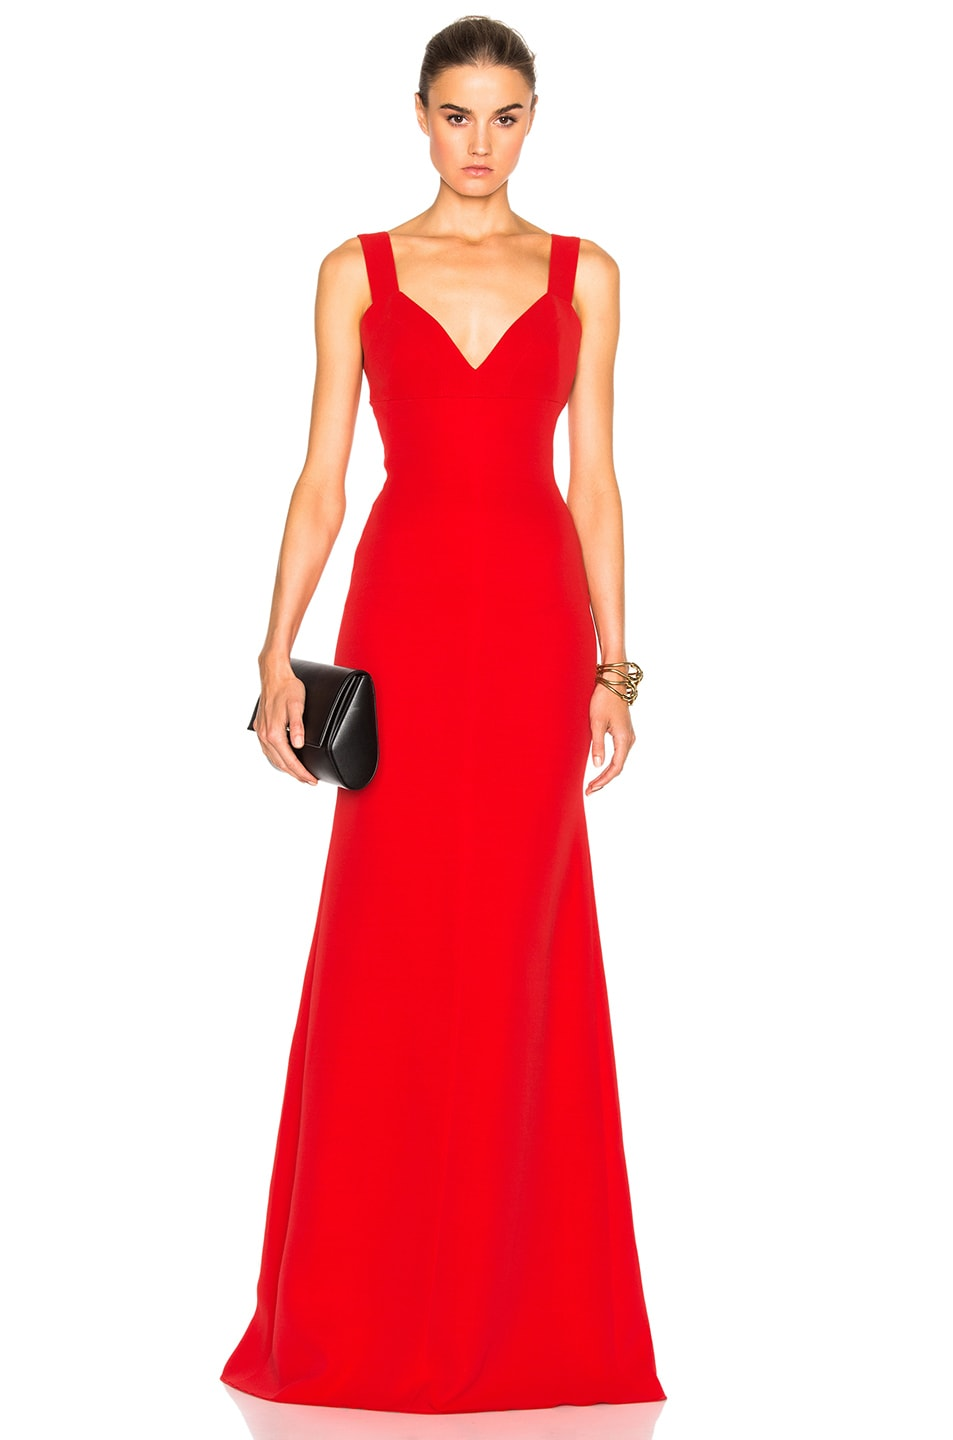 Image 1 of Victoria Beckham Double Crepe Camisole Floor Length Dress in Scarlet Red